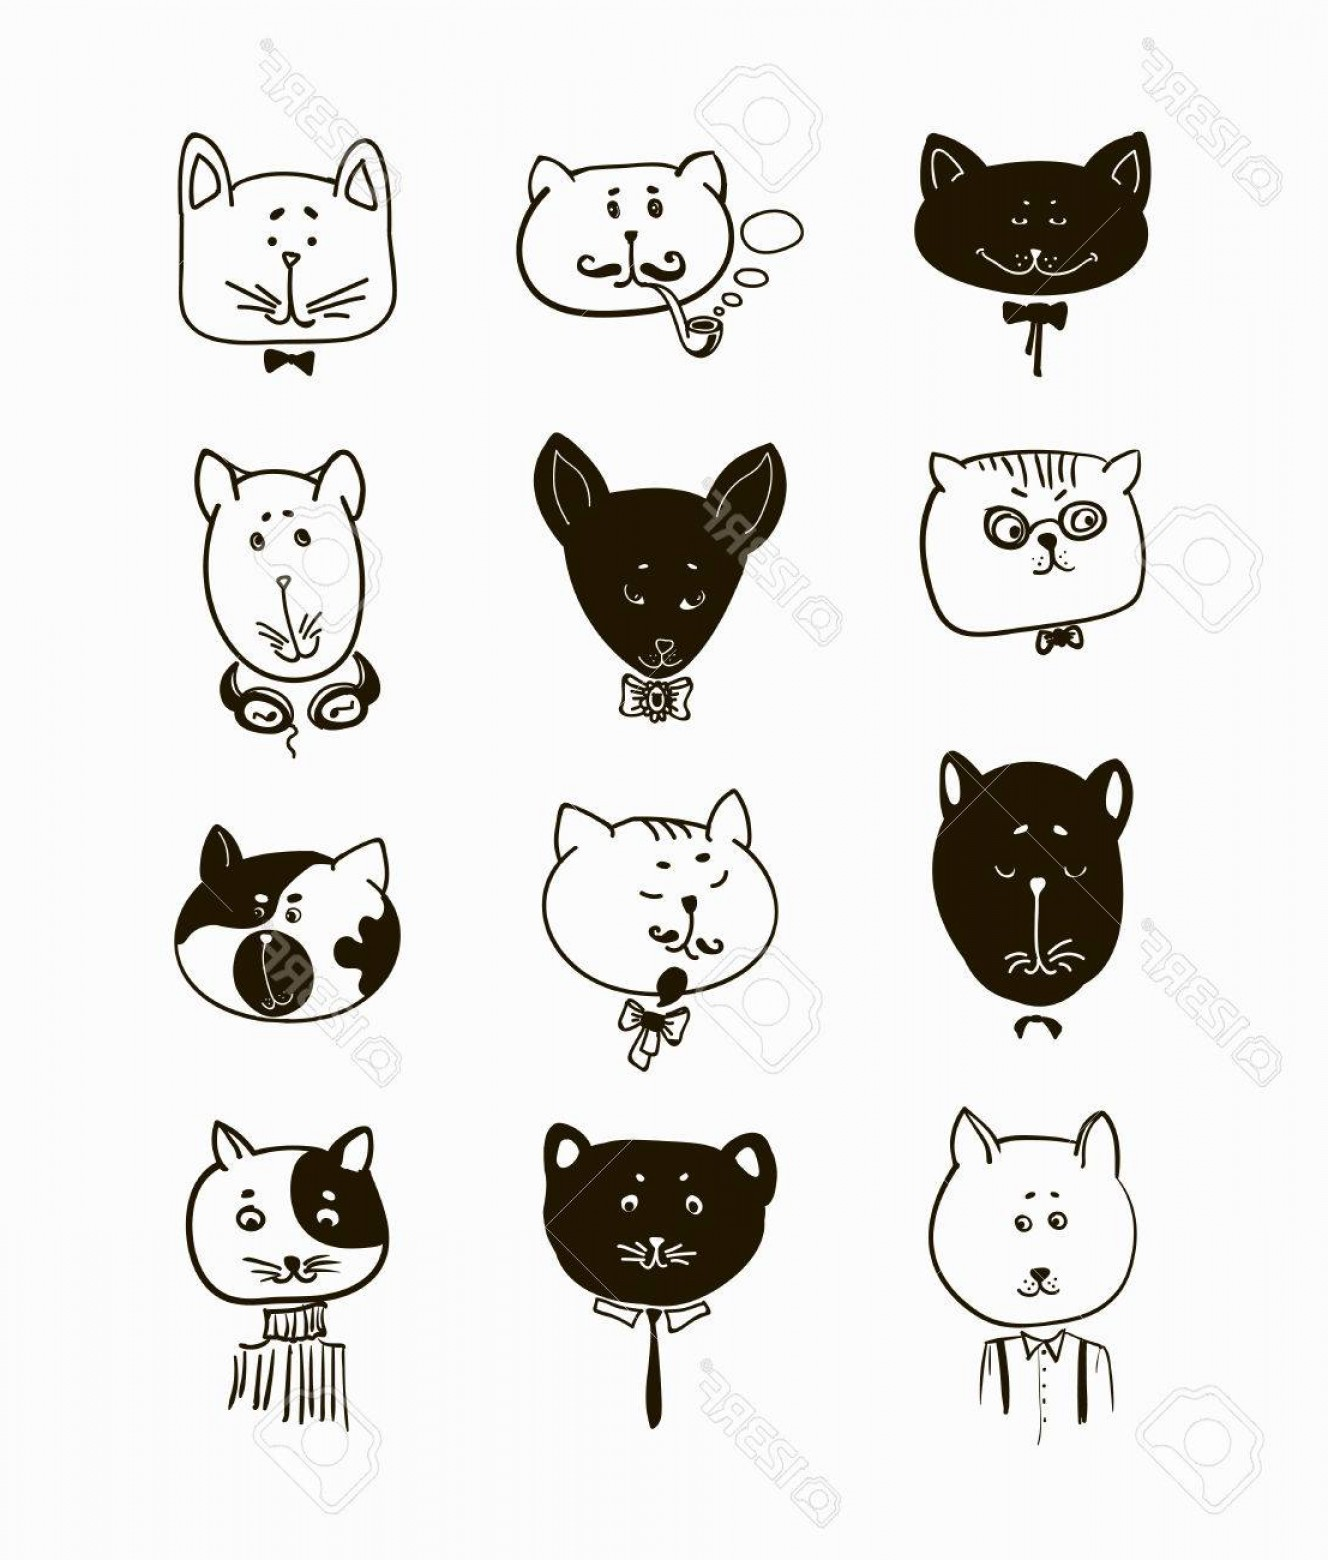 Malee Cat Head Silhouette Vector: Photostock Vector Set Of Cats Heads Face Kitten Whiskers And Ears Muzzle And Wool Vector Illustration